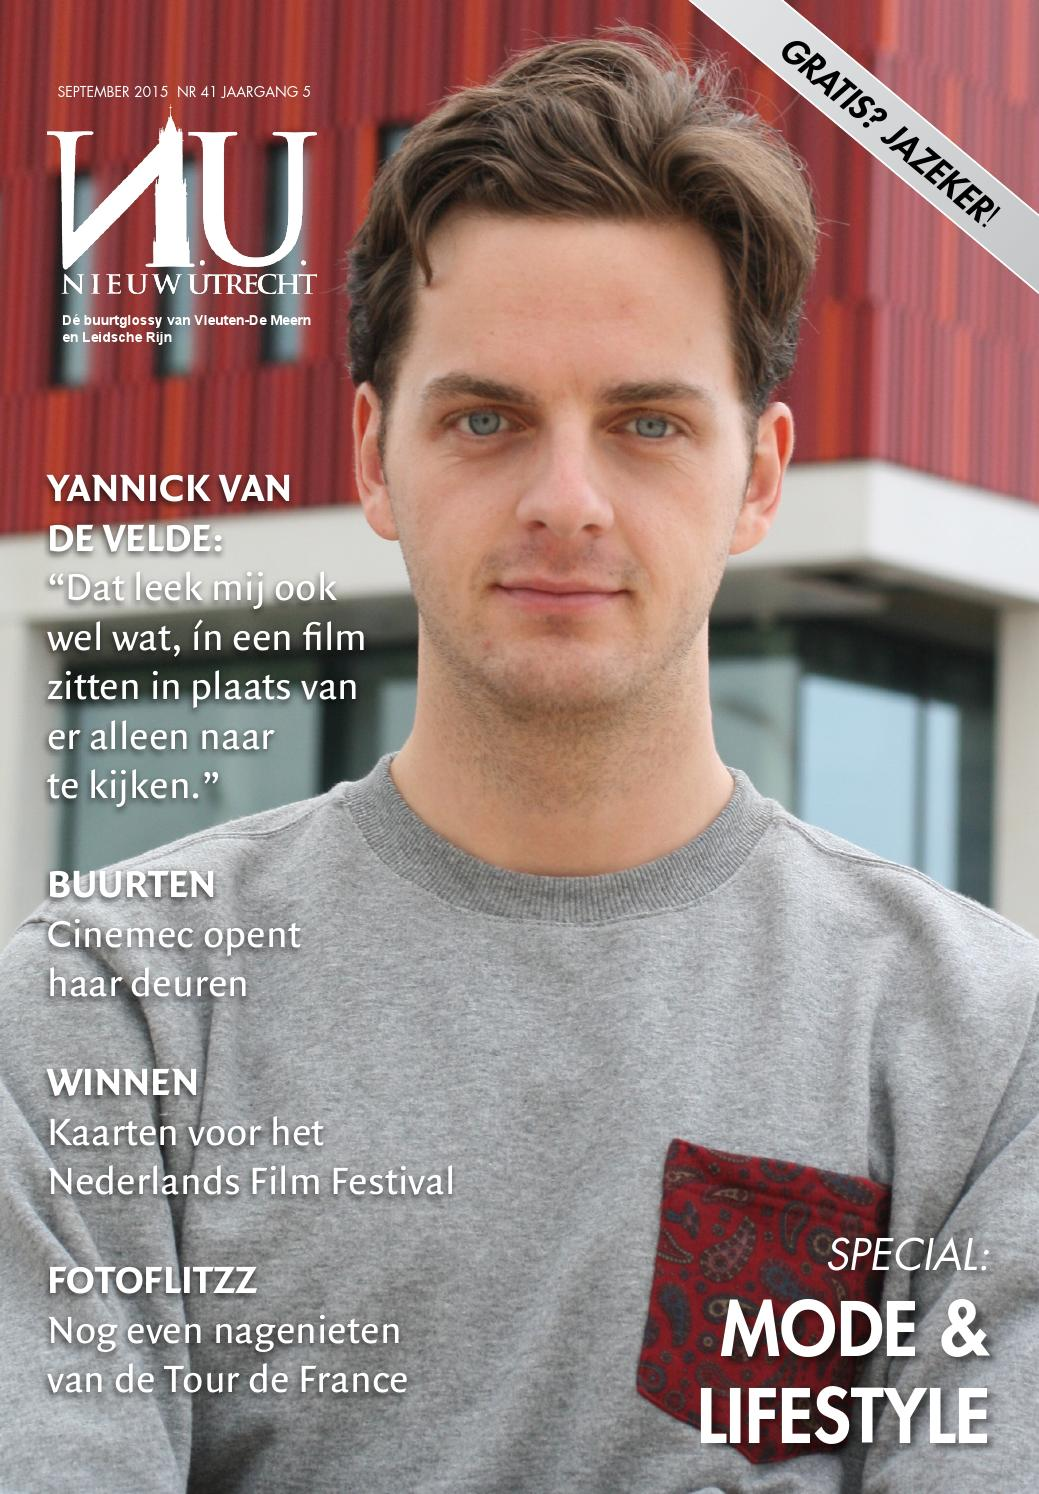 N.u. magazine september 2015 by n.u. magazine   issuu